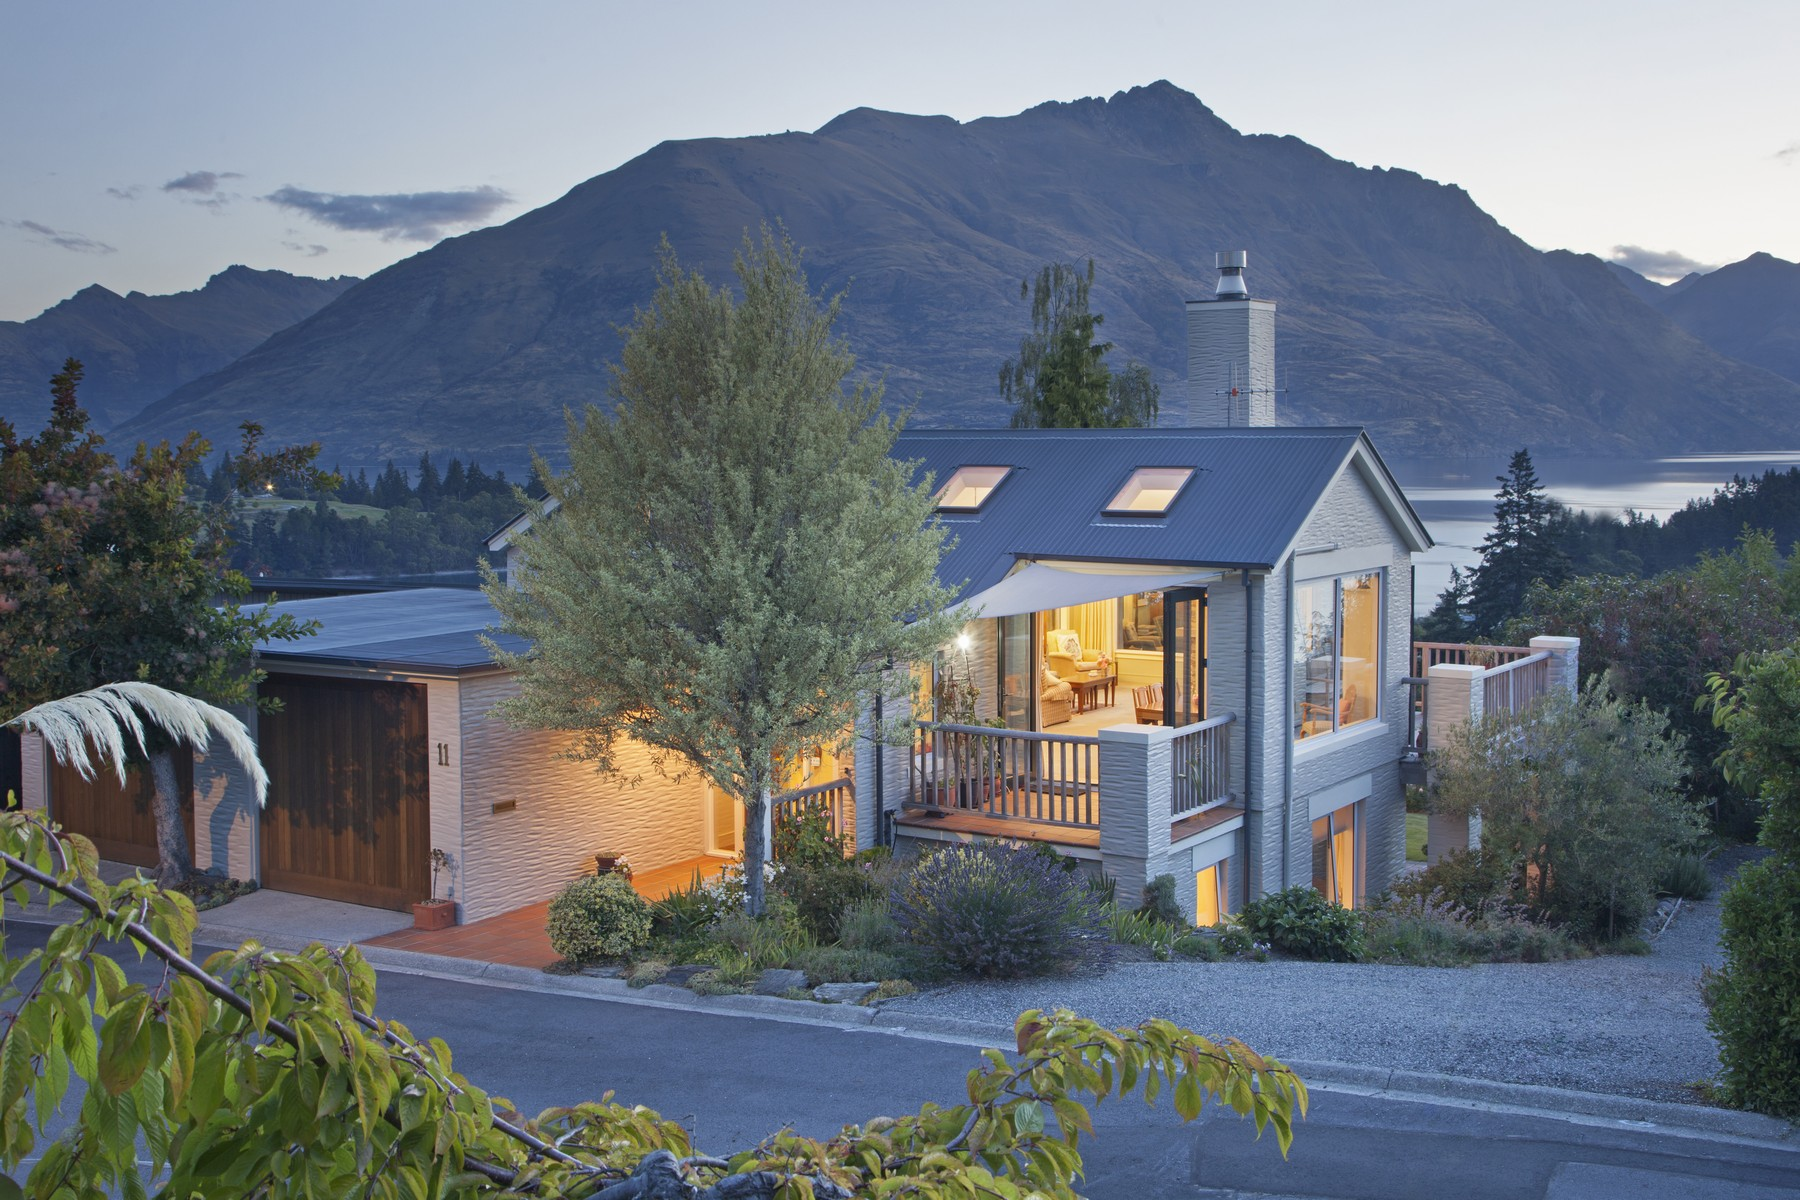 Single Family Home for Sale at 11 Salmond Pace 11 Salmond Place Queenstown Hill Queenstown, Otago 9300 New Zealand